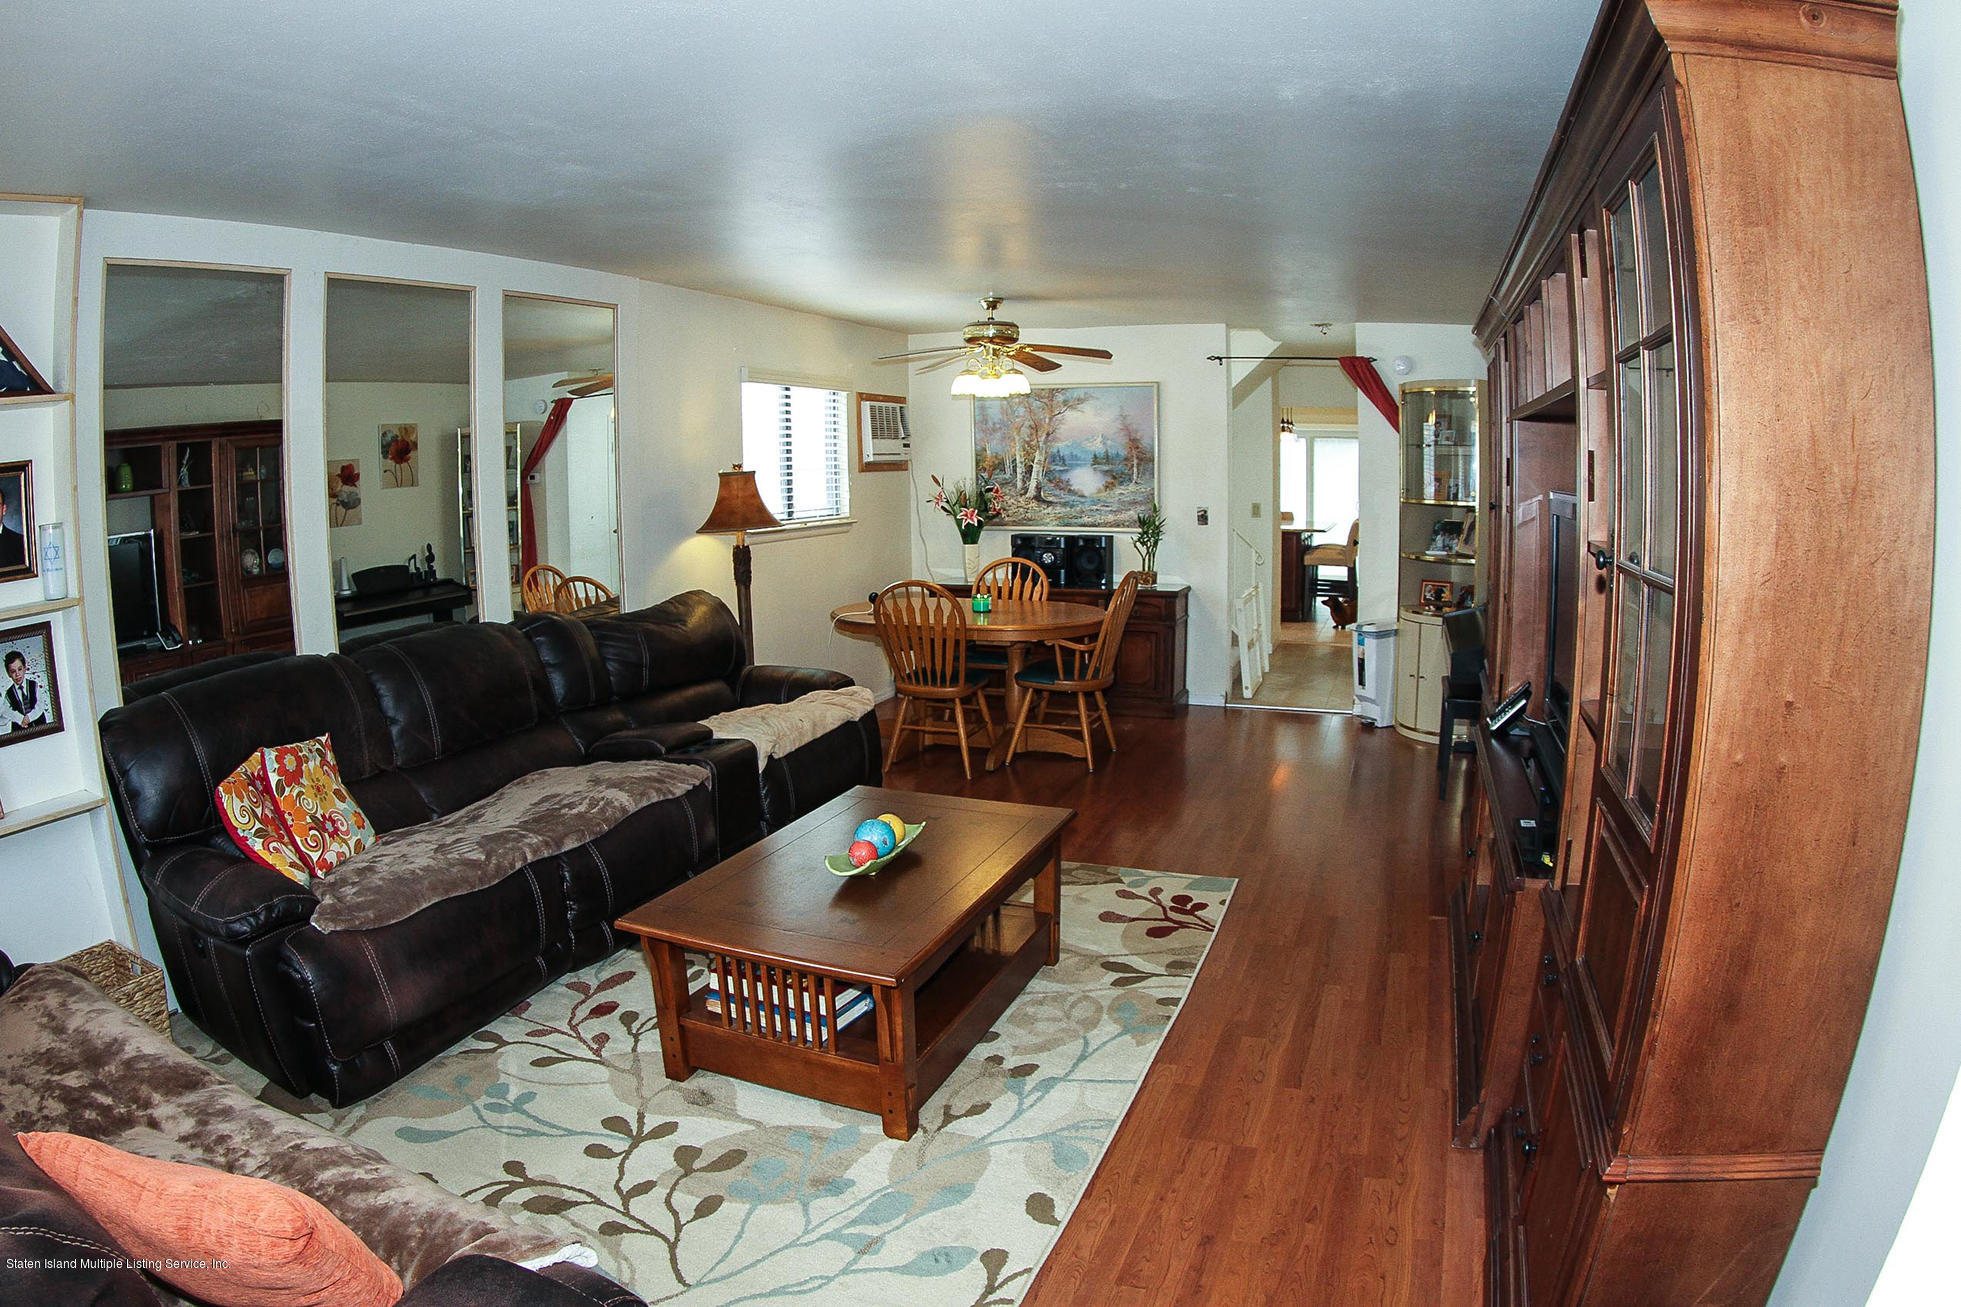 Single Family - Semi-Attached 972 Rensselaer Avenue  Staten Island, NY 10309, MLS-1134144-11